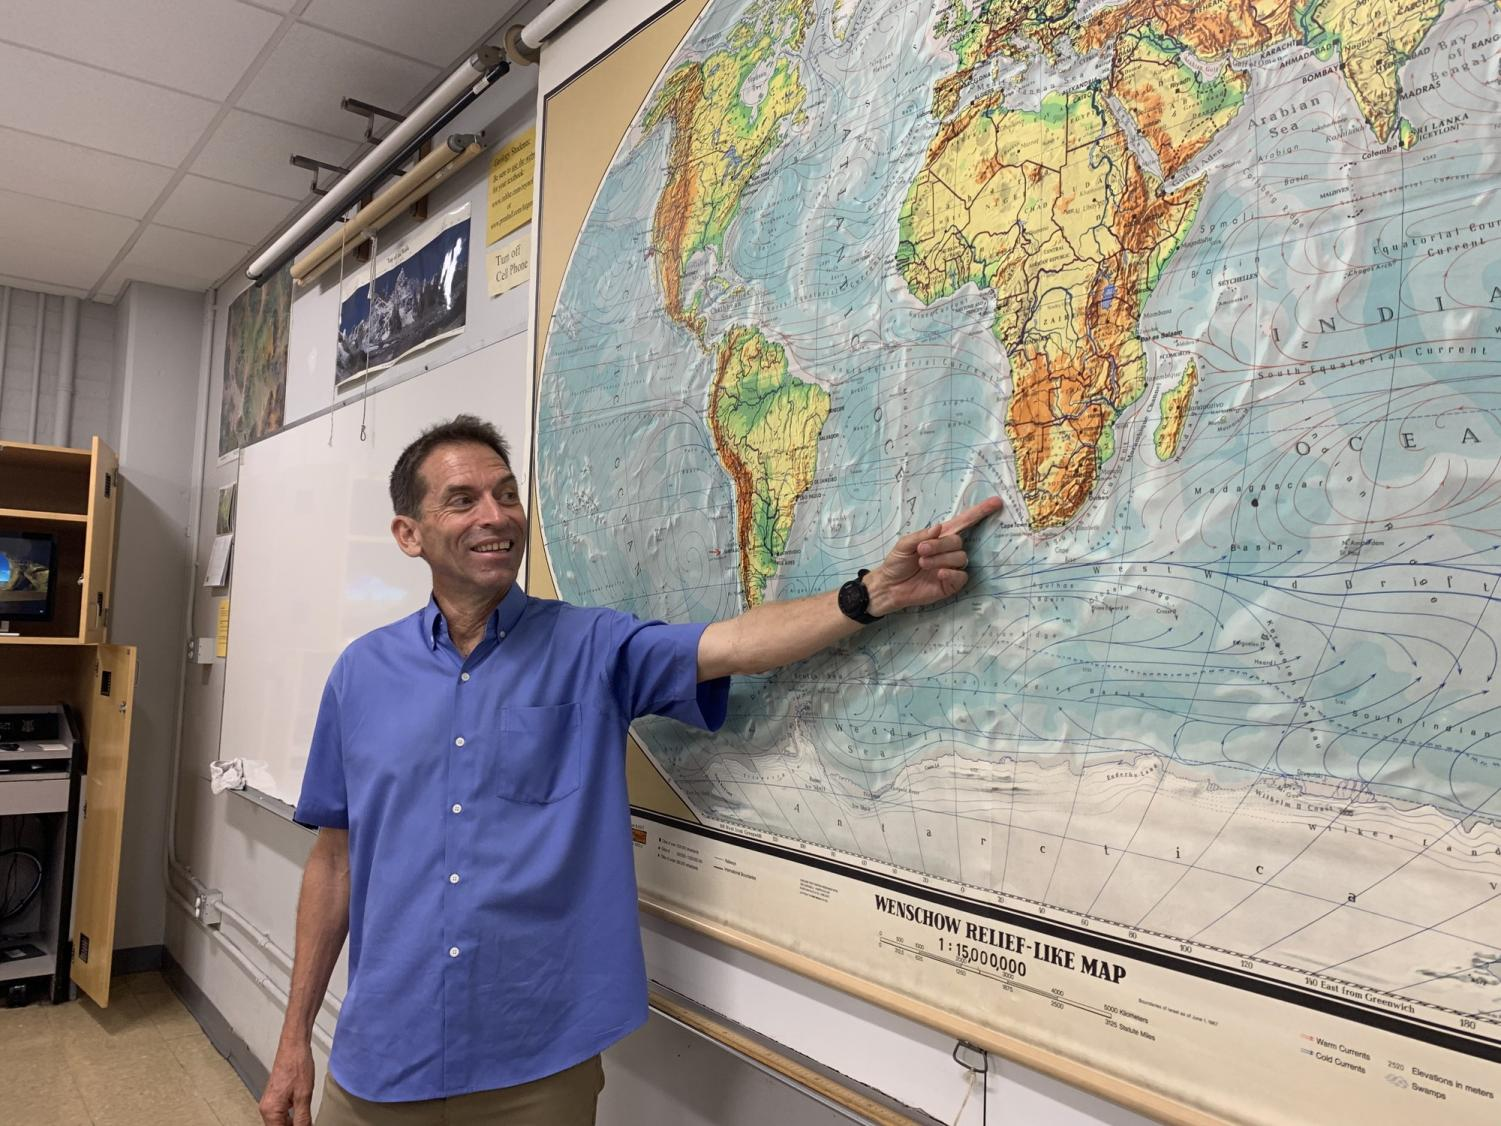 """ECC geography professor of 30 years, Matt Ebinor, points to where the Namibia and South Africa border is located during one of his geography lectures on Tuesday, Sept. 3. When Ebiner is not teaching at ECC he organizes tours to different countries. """"It keeps me busy and is a kind of extension of my geography teaching,"""" Ebiner said. Photo credit: Anna Podshivalova"""